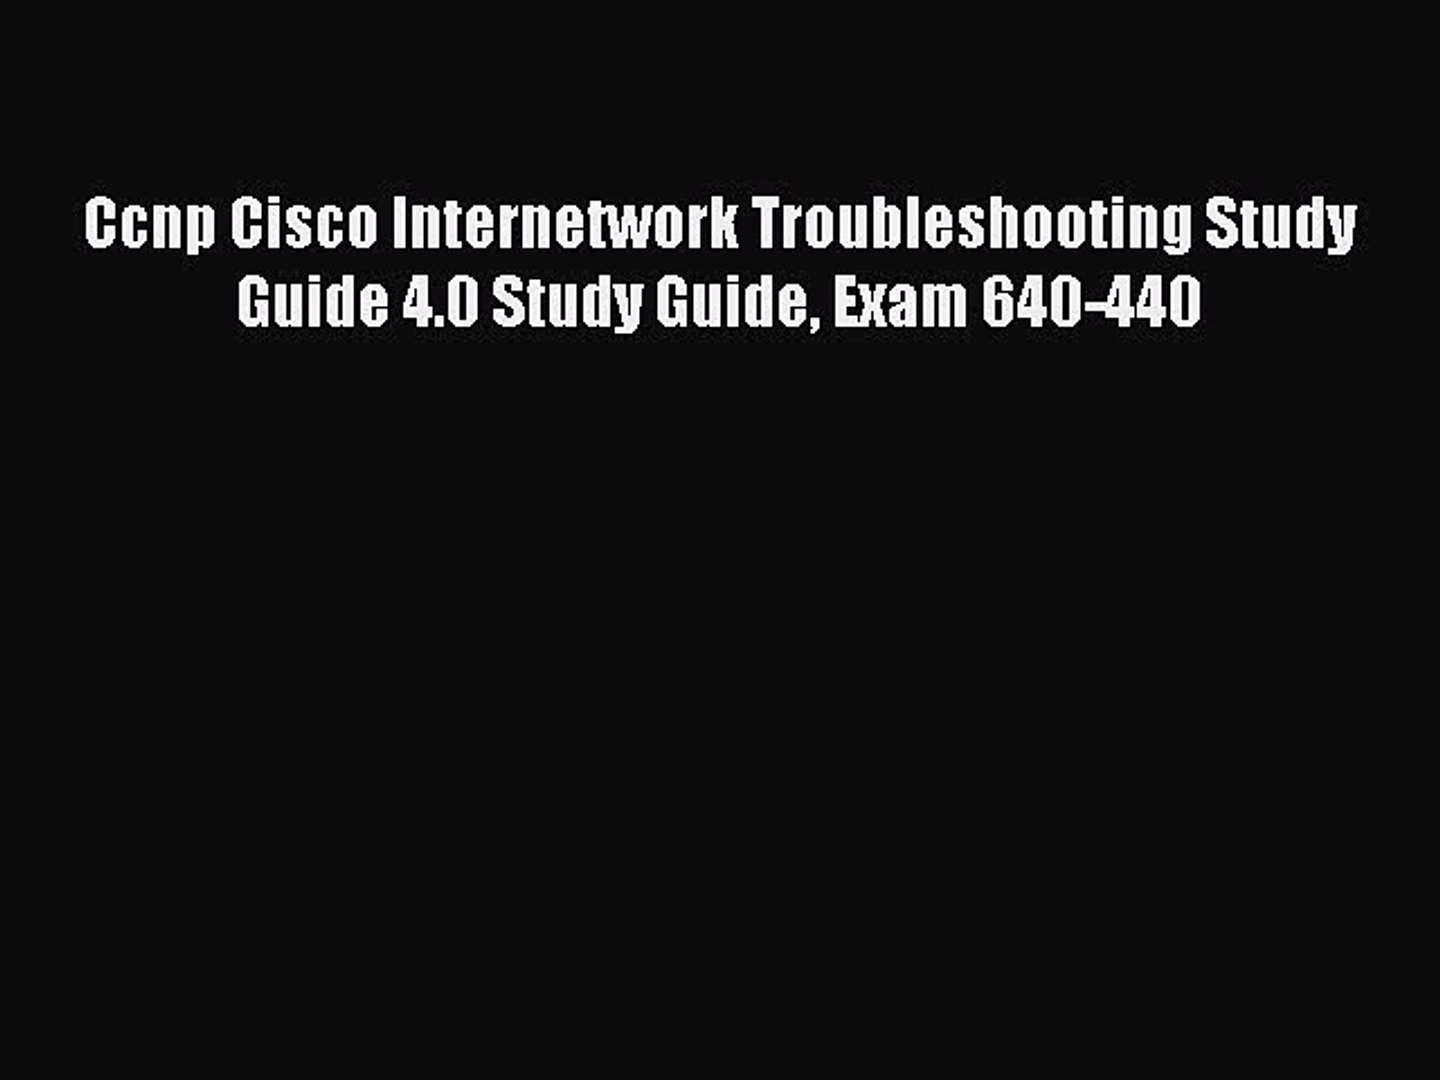 CCNP Ccnp Cisco Internetwork Troubleshooting Study Guide